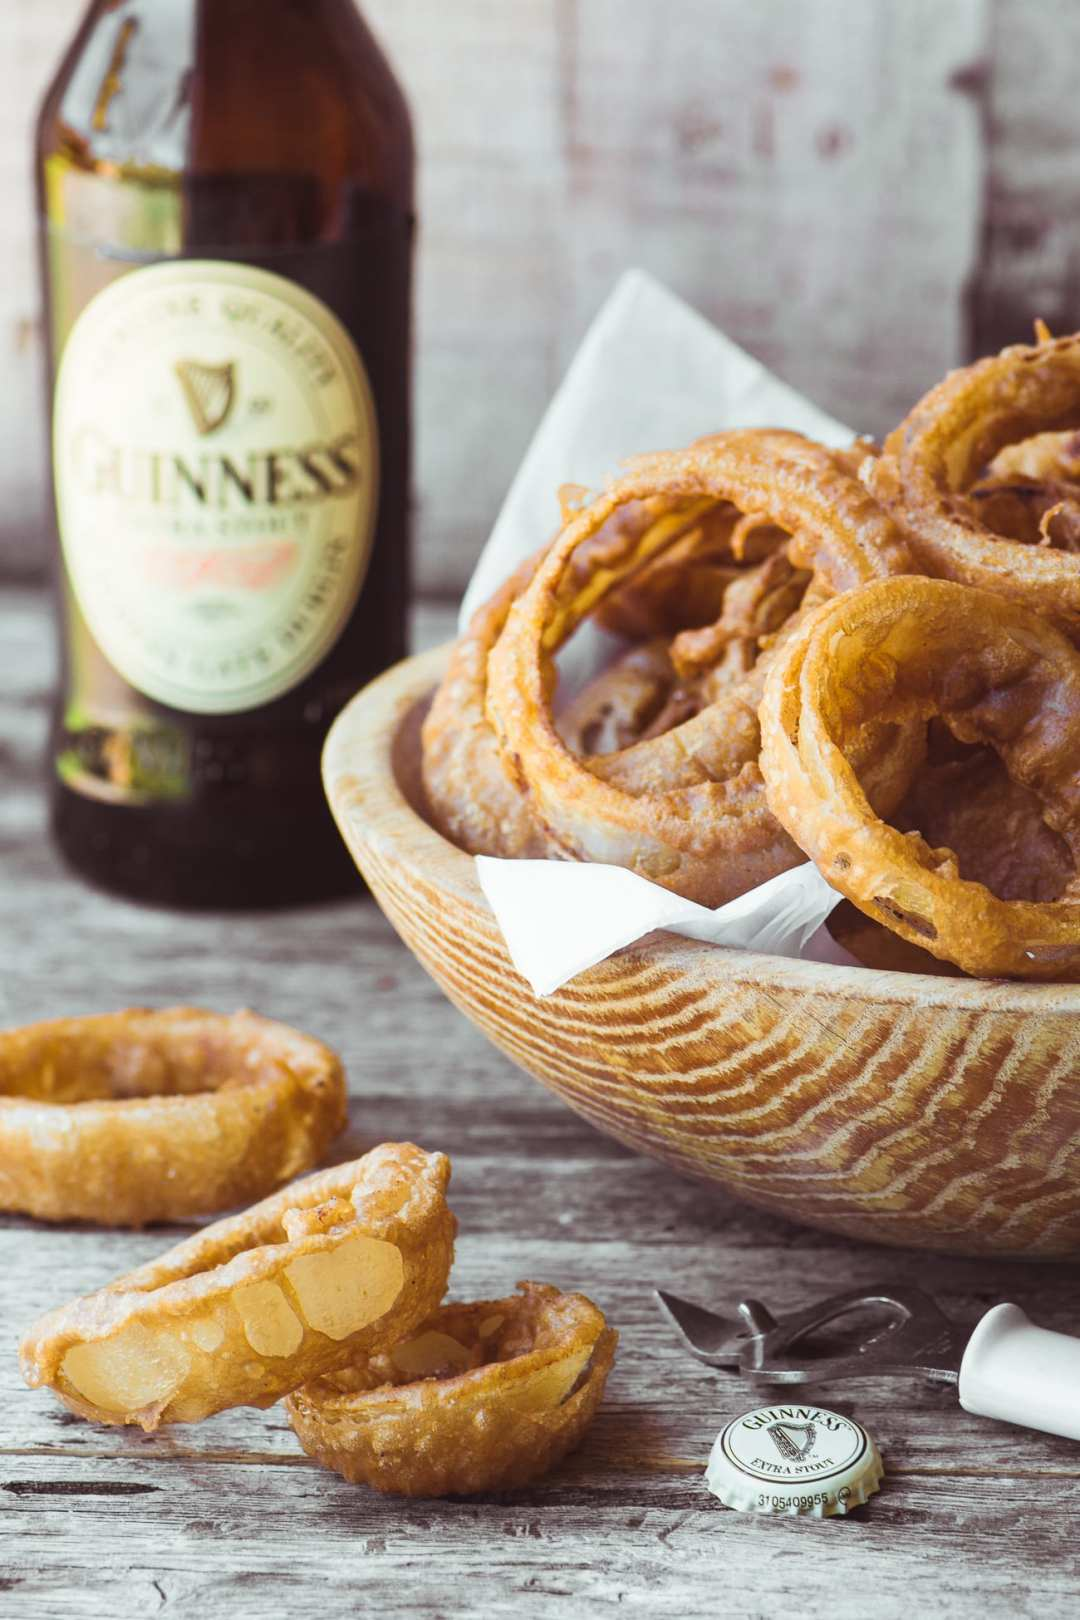 Guiness Battered Onion Rings with a spicy curried mayo ~ big thick rings drenched in a rich batter and fried to perfection ~